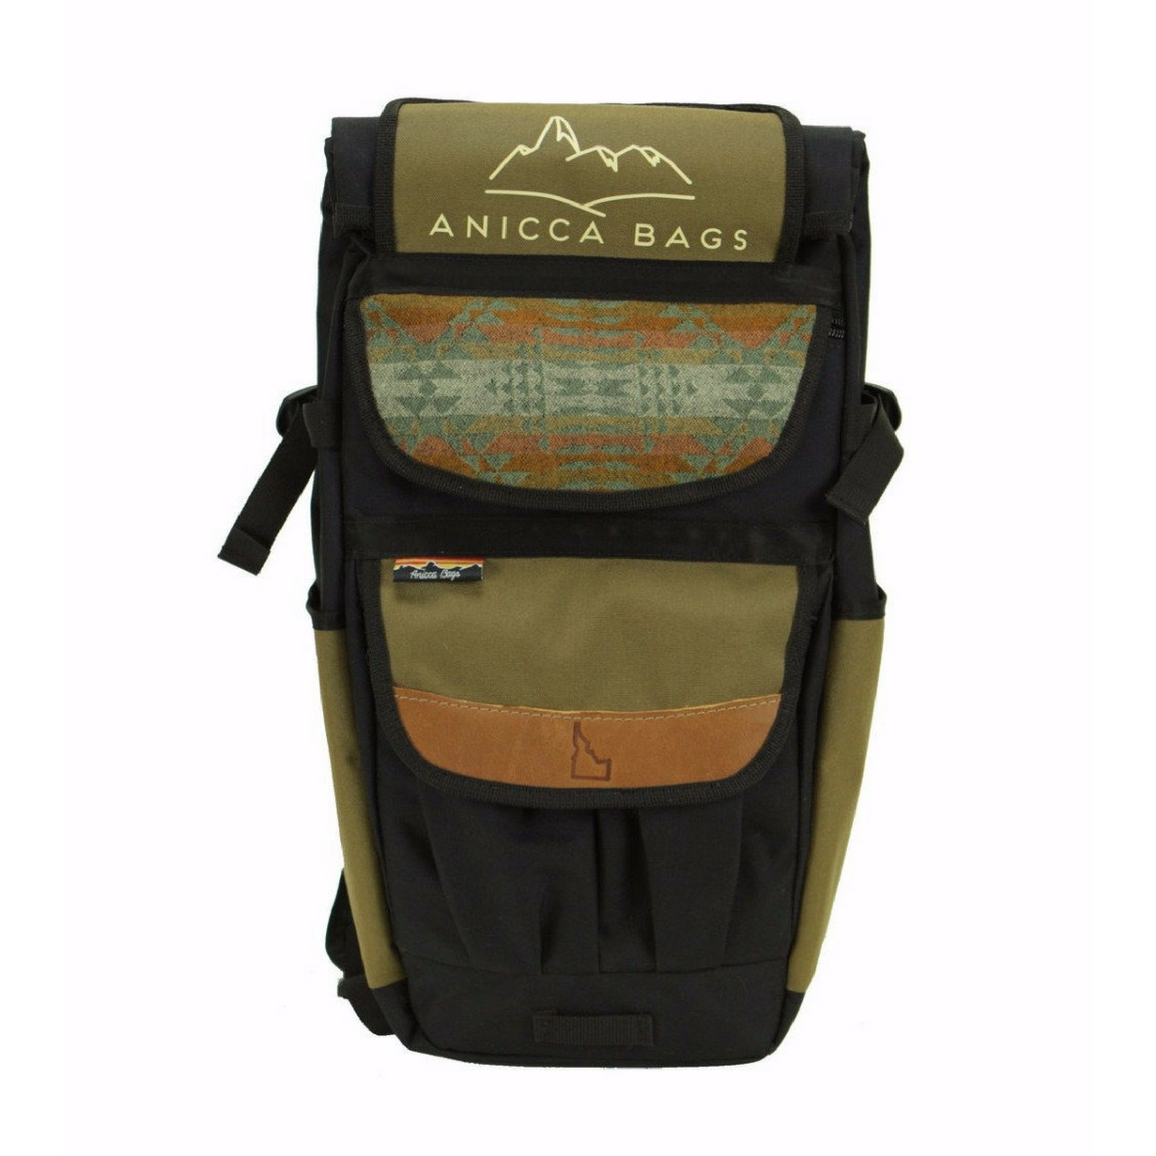 Copy of Anicca Bags Brad image.jpg